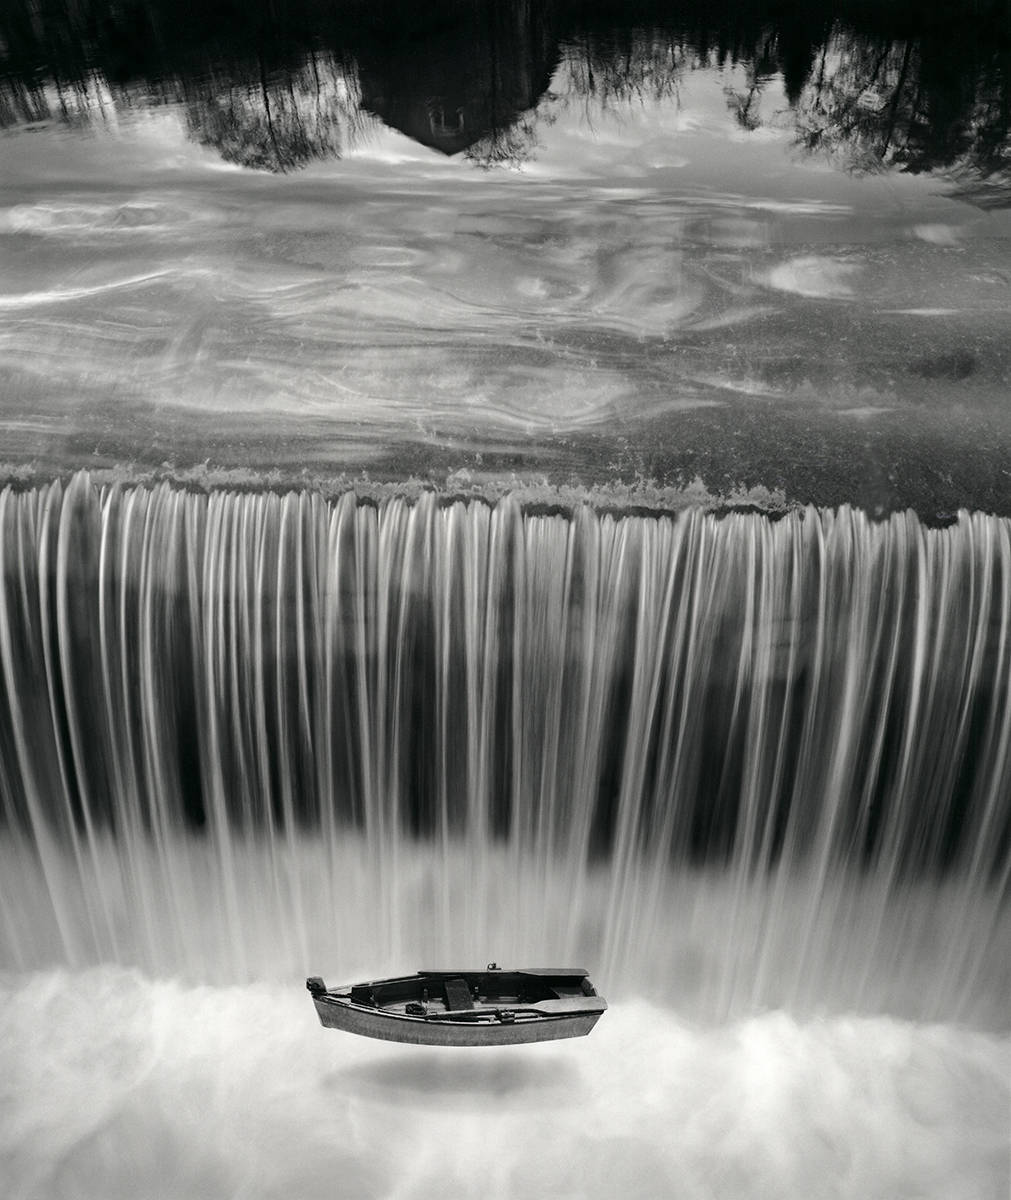 Jerry Uelsmann Untitled Boat and Waterfall Catherine Couturier Gallery